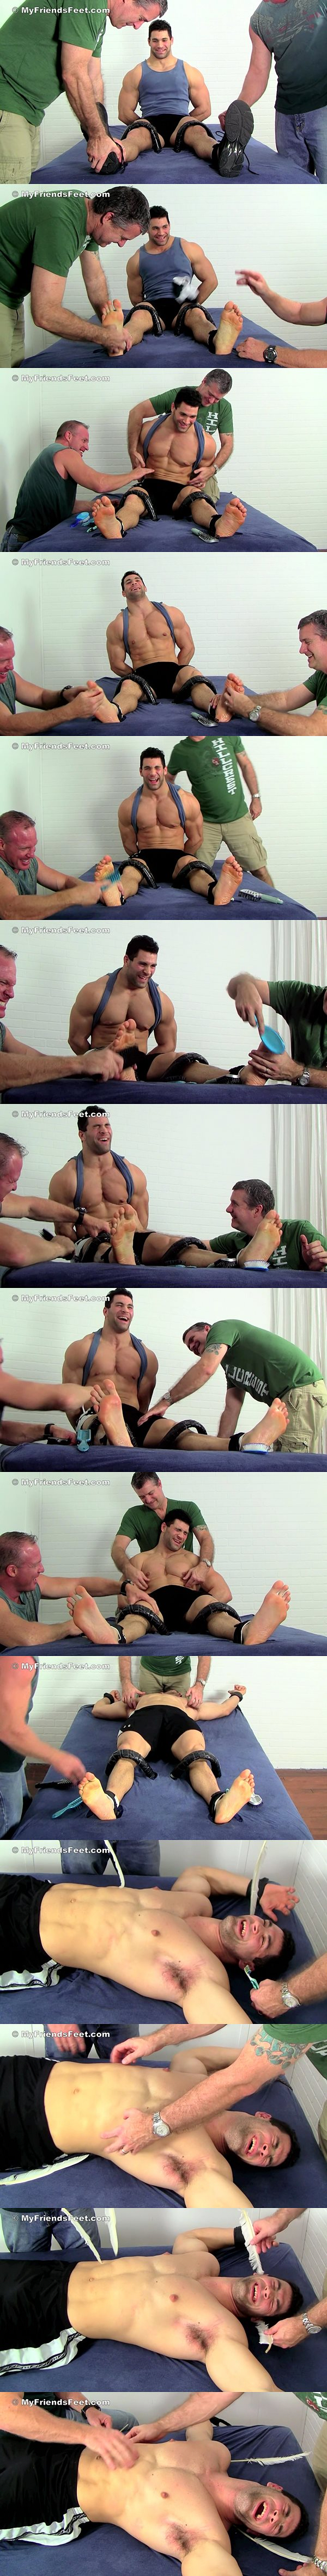 Myfriendsfeet - Muscle Stud Vinnie Tickled 03